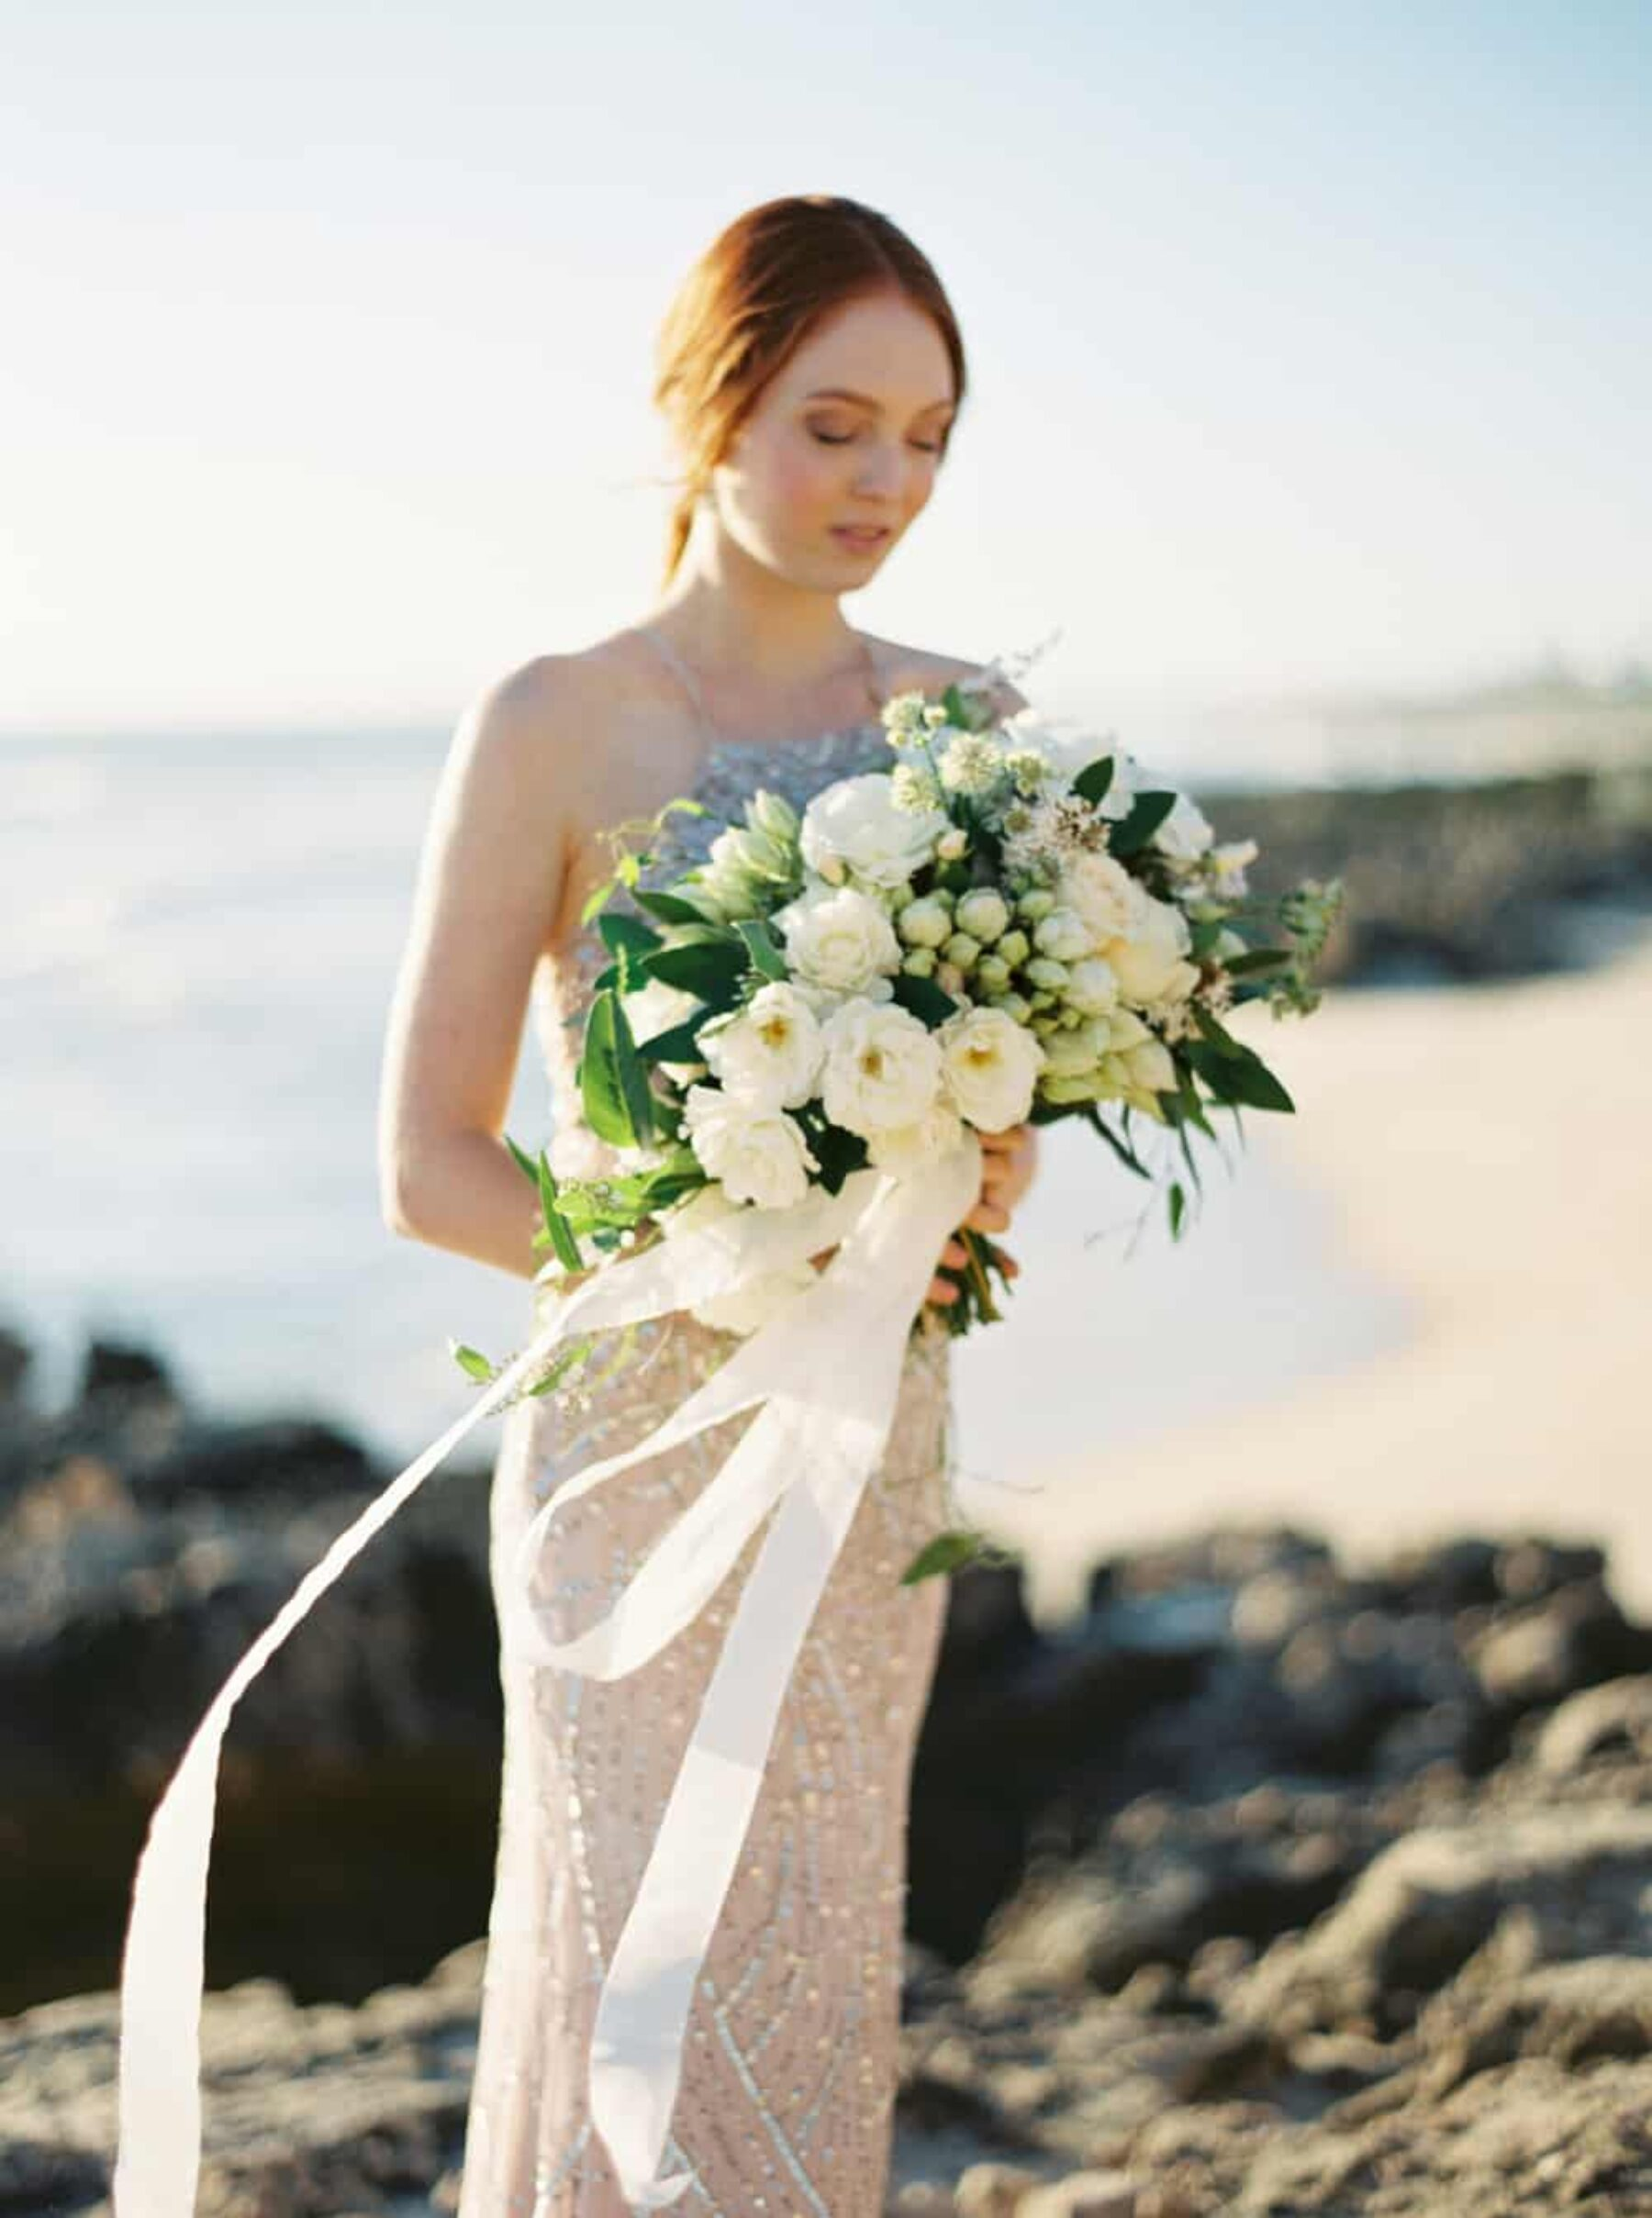 Green and white bouquet/ Photography by Katie Grant